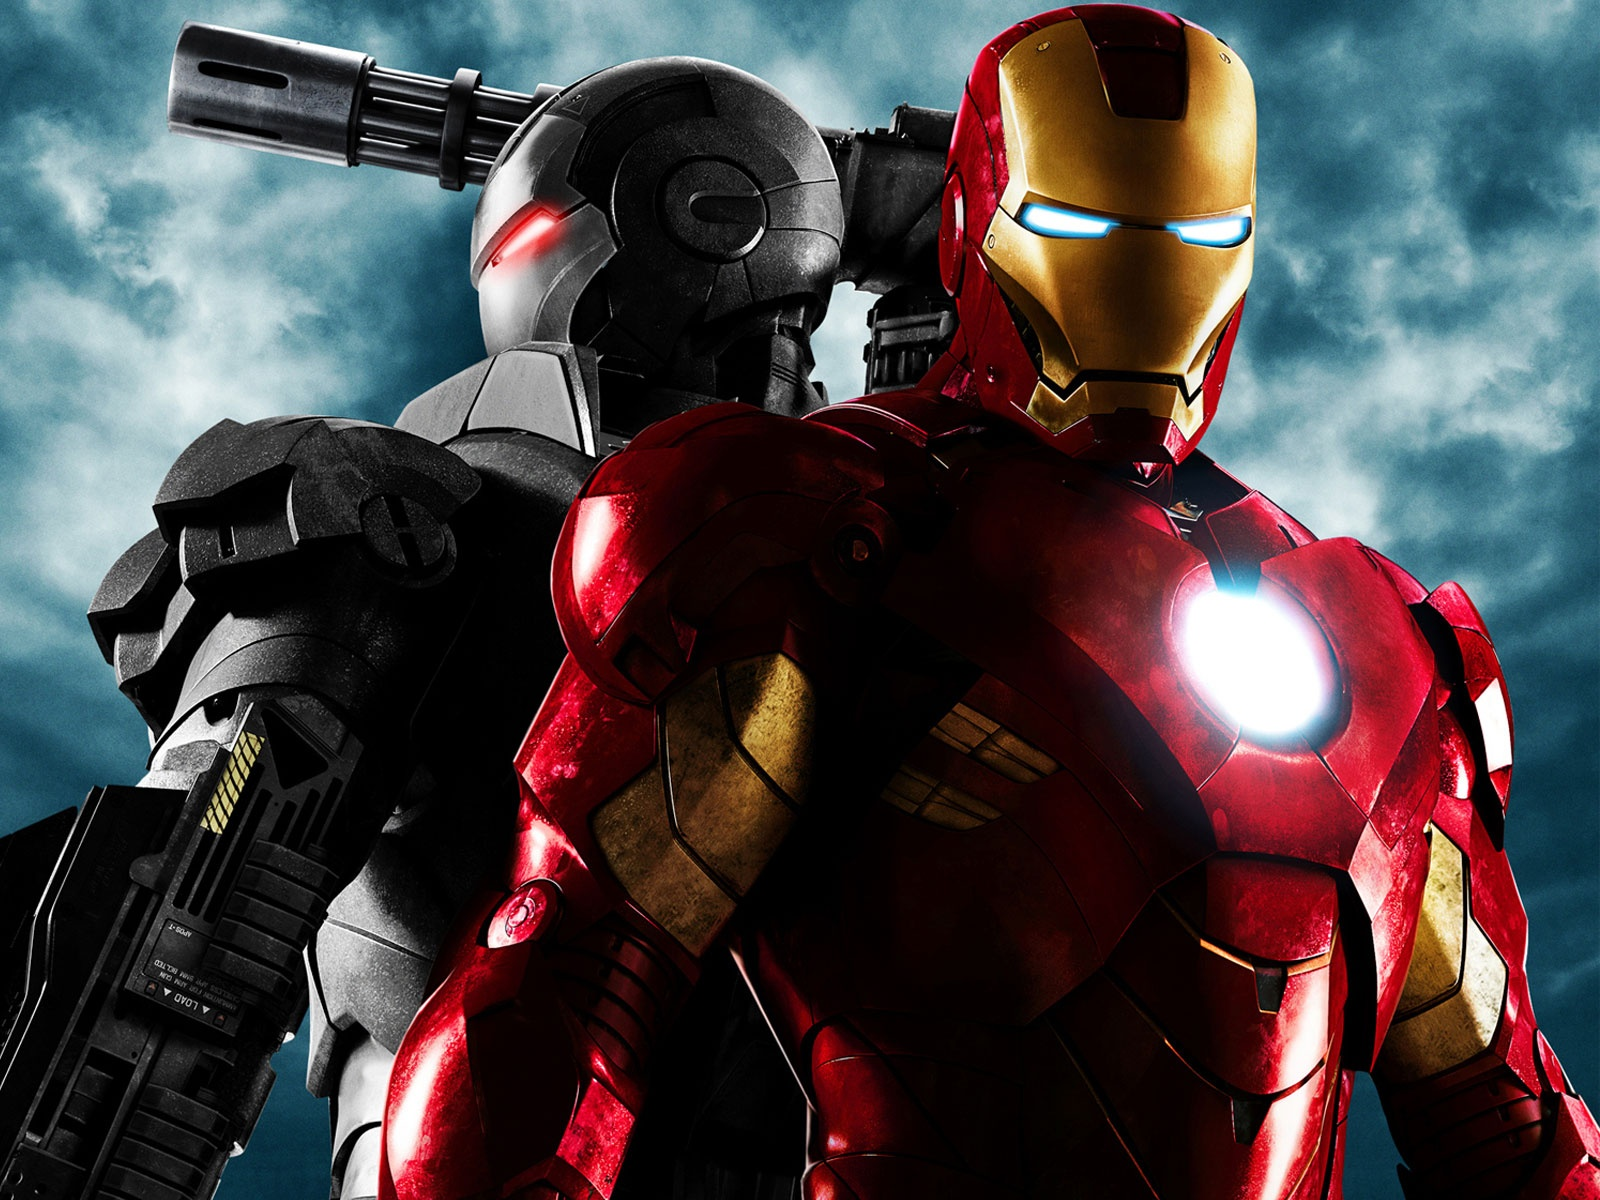 Iron Man 2 Movie Wallpapers in jpg format for free download